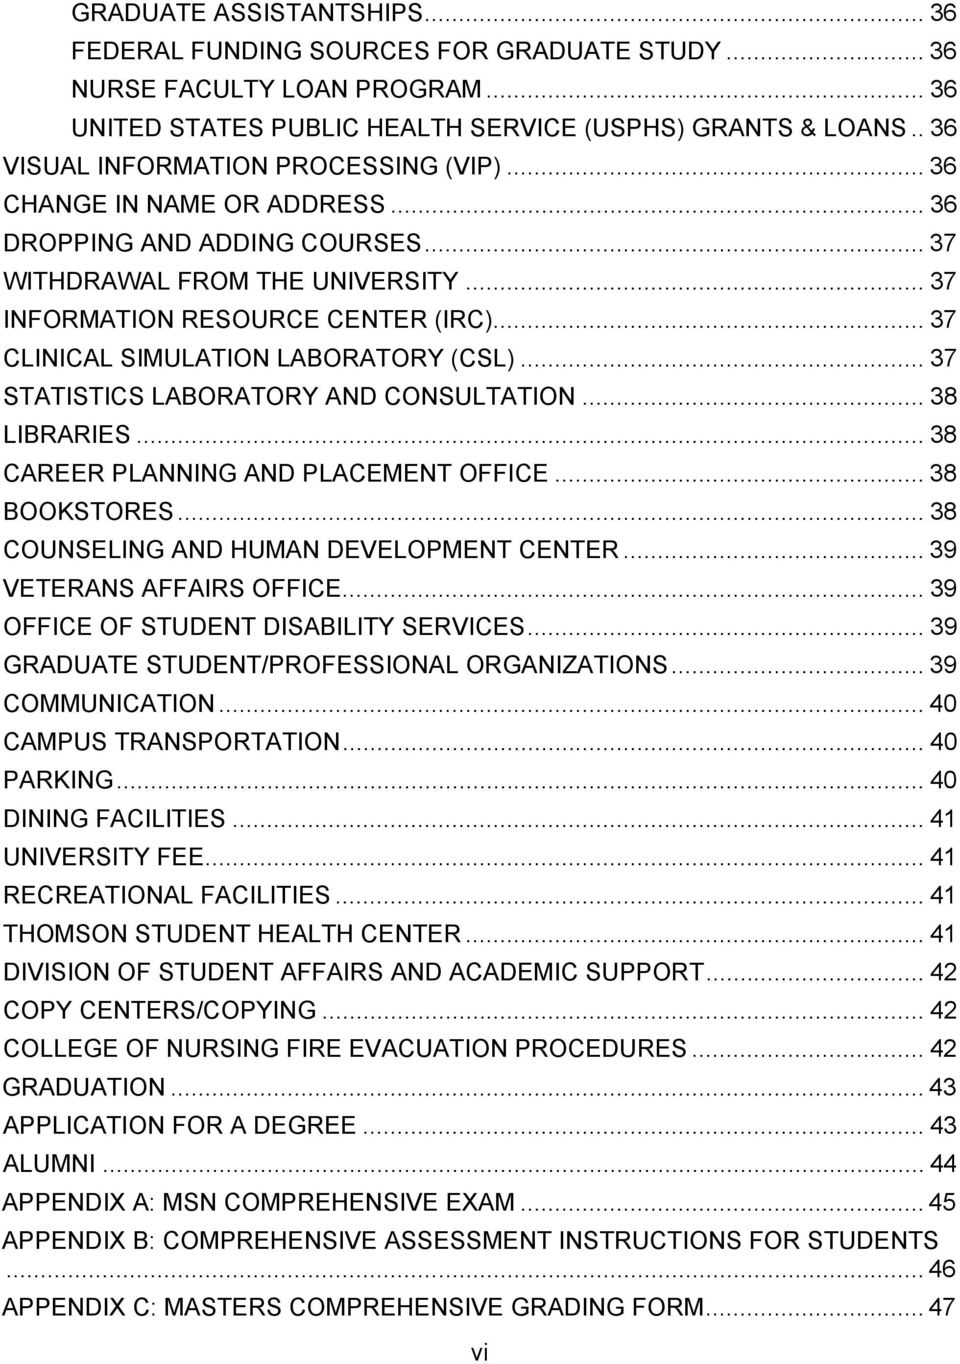 .. 37 CLINICAL SIMULATION LABORATORY (CSL)... 37 STATISTICS LABORATORY AND CONSULTATION... 38 LIBRARIES... 38 CAREER PLANNING AND PLACEMENT OFFICE... 38 BOOKSTORES.